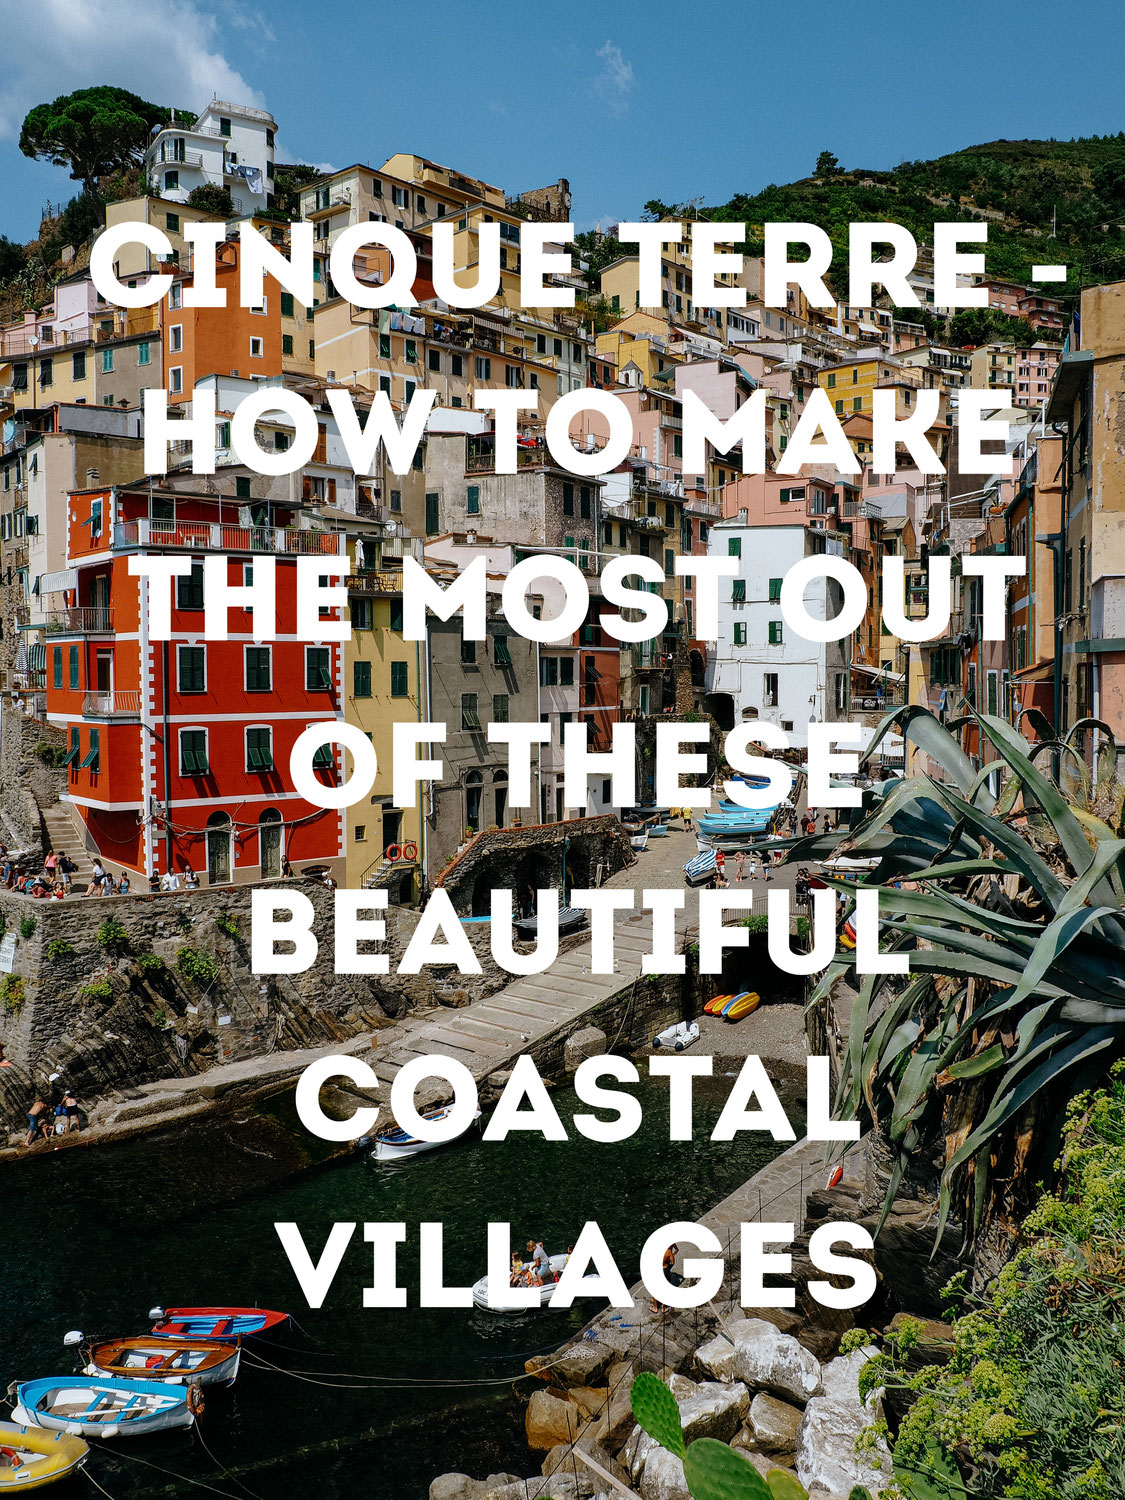 Cinque Terre - How to Make the Most Out of these Beautiful Coastal Villages